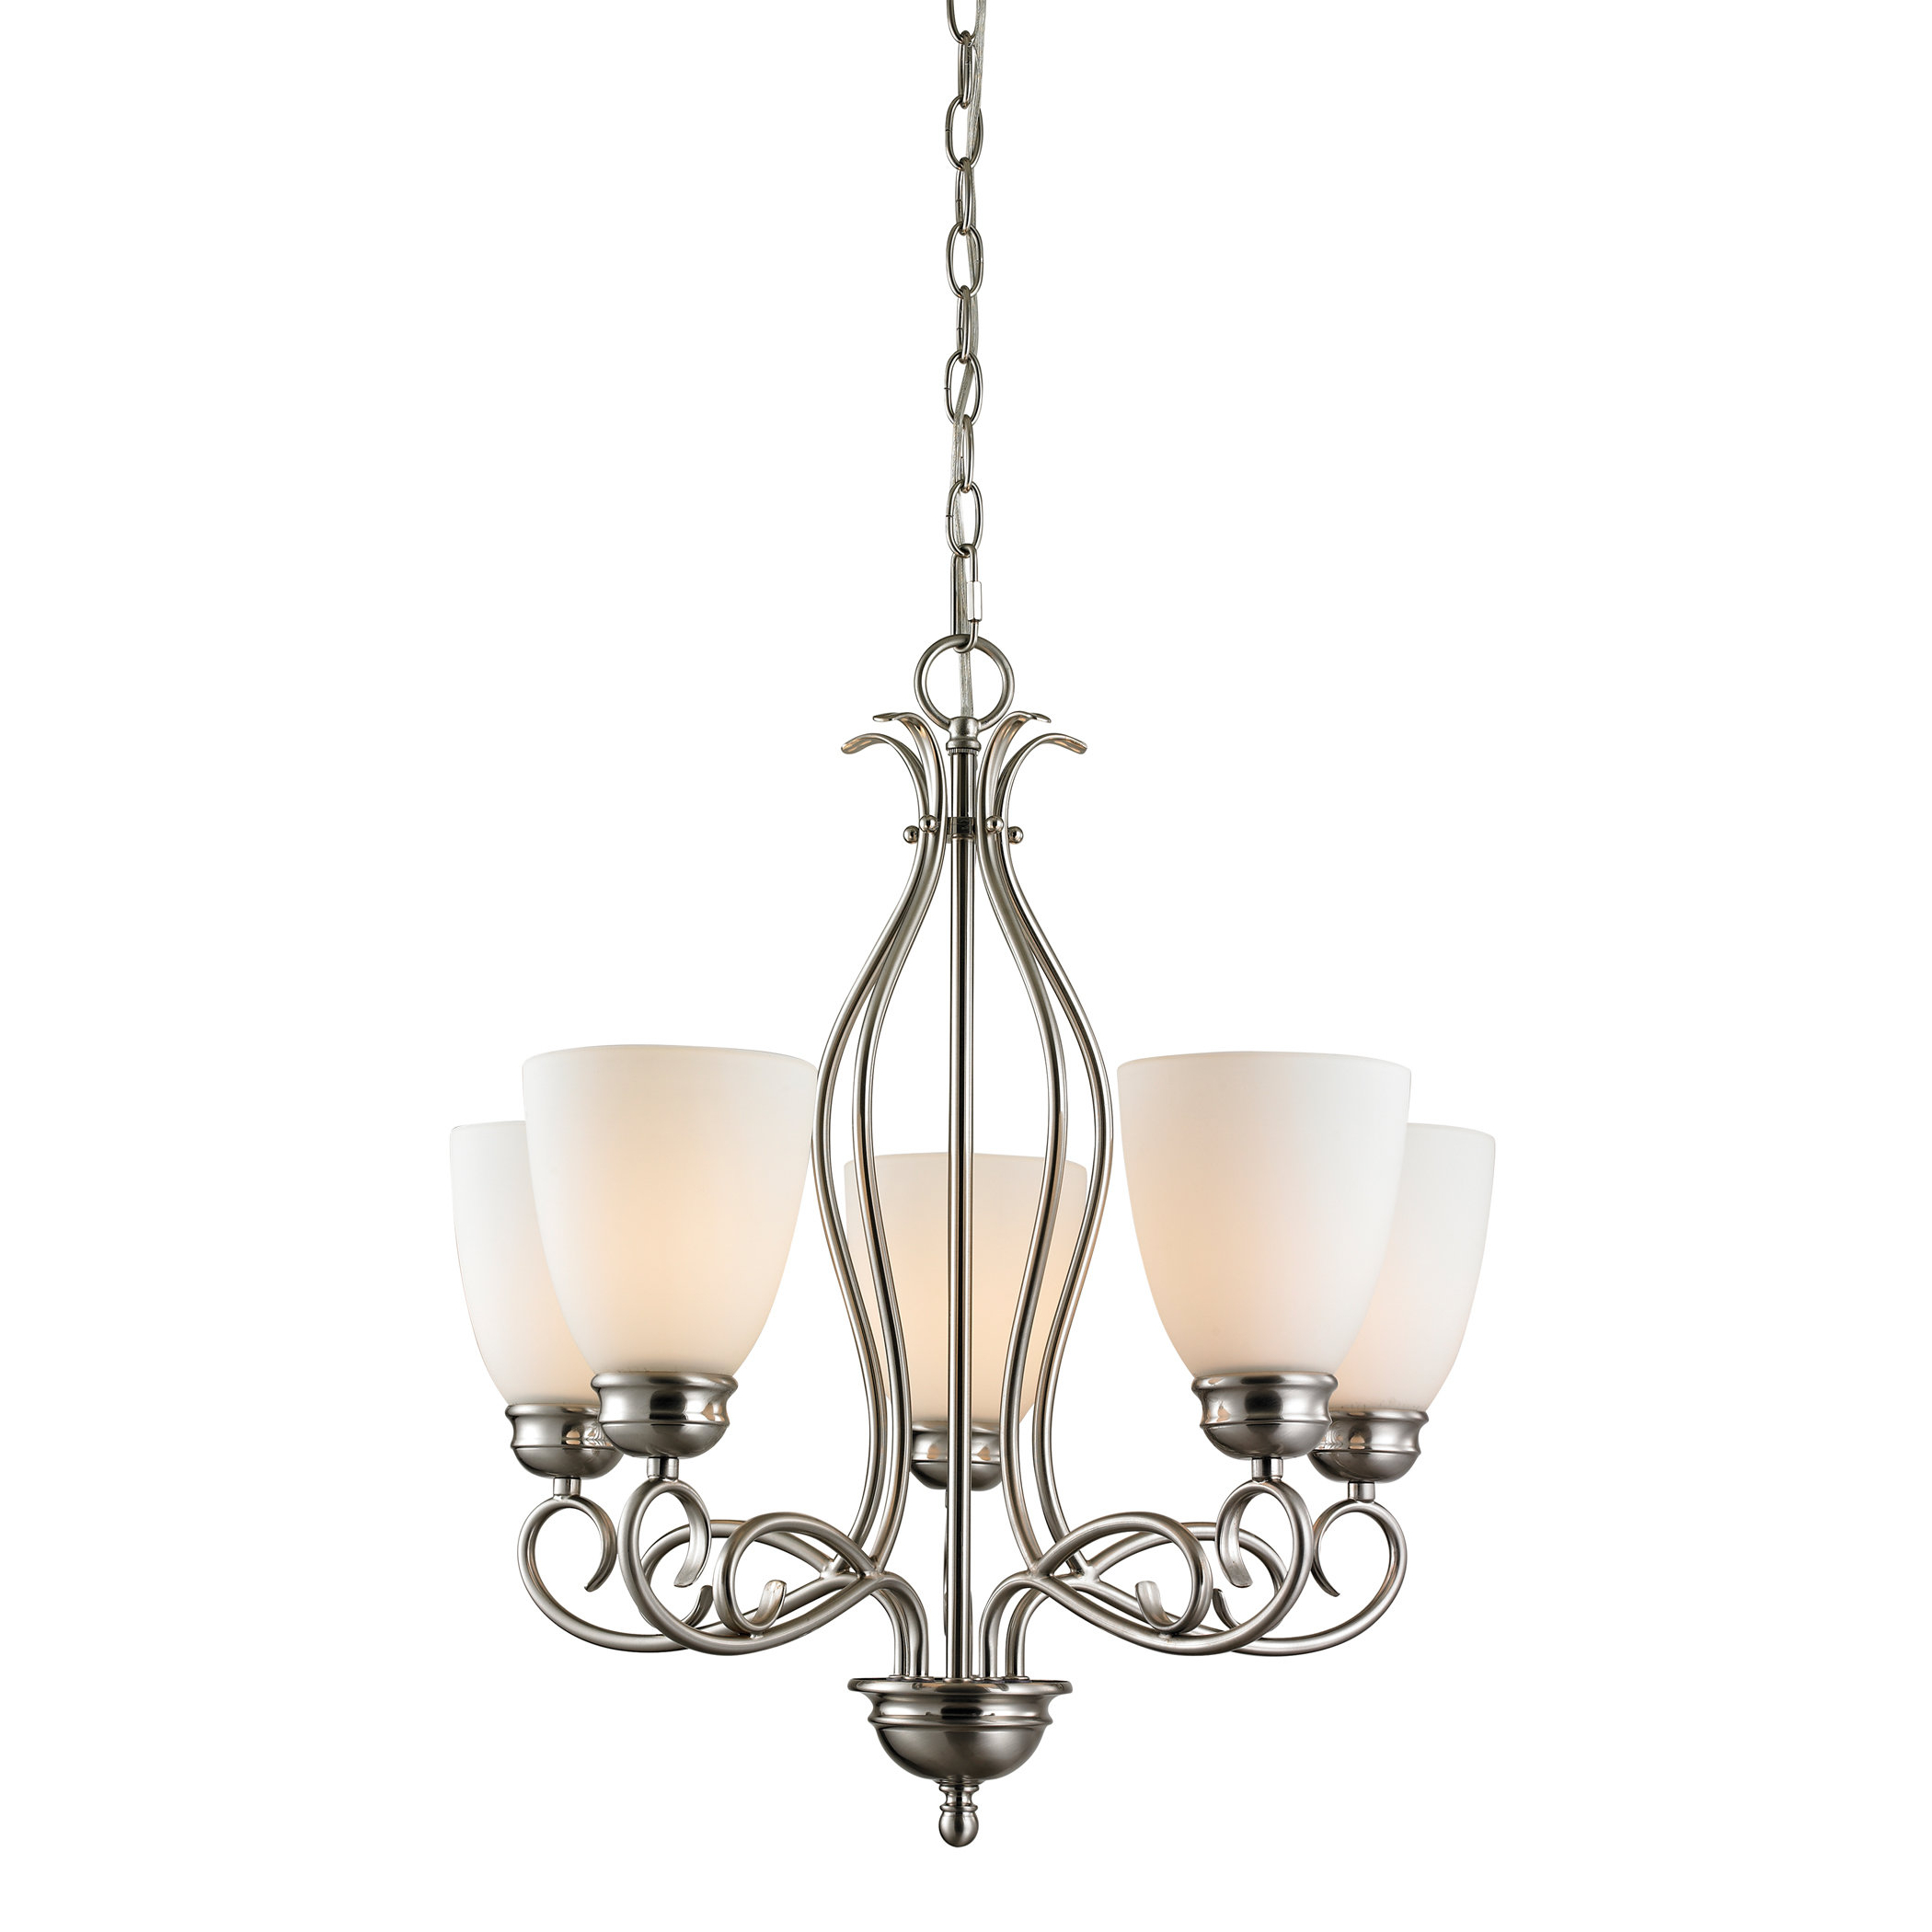 Best And Newest Pearlie 5 Light Shaded Chandelier Inside Gaines 5 Light Shaded Chandeliers (View 17 of 20)